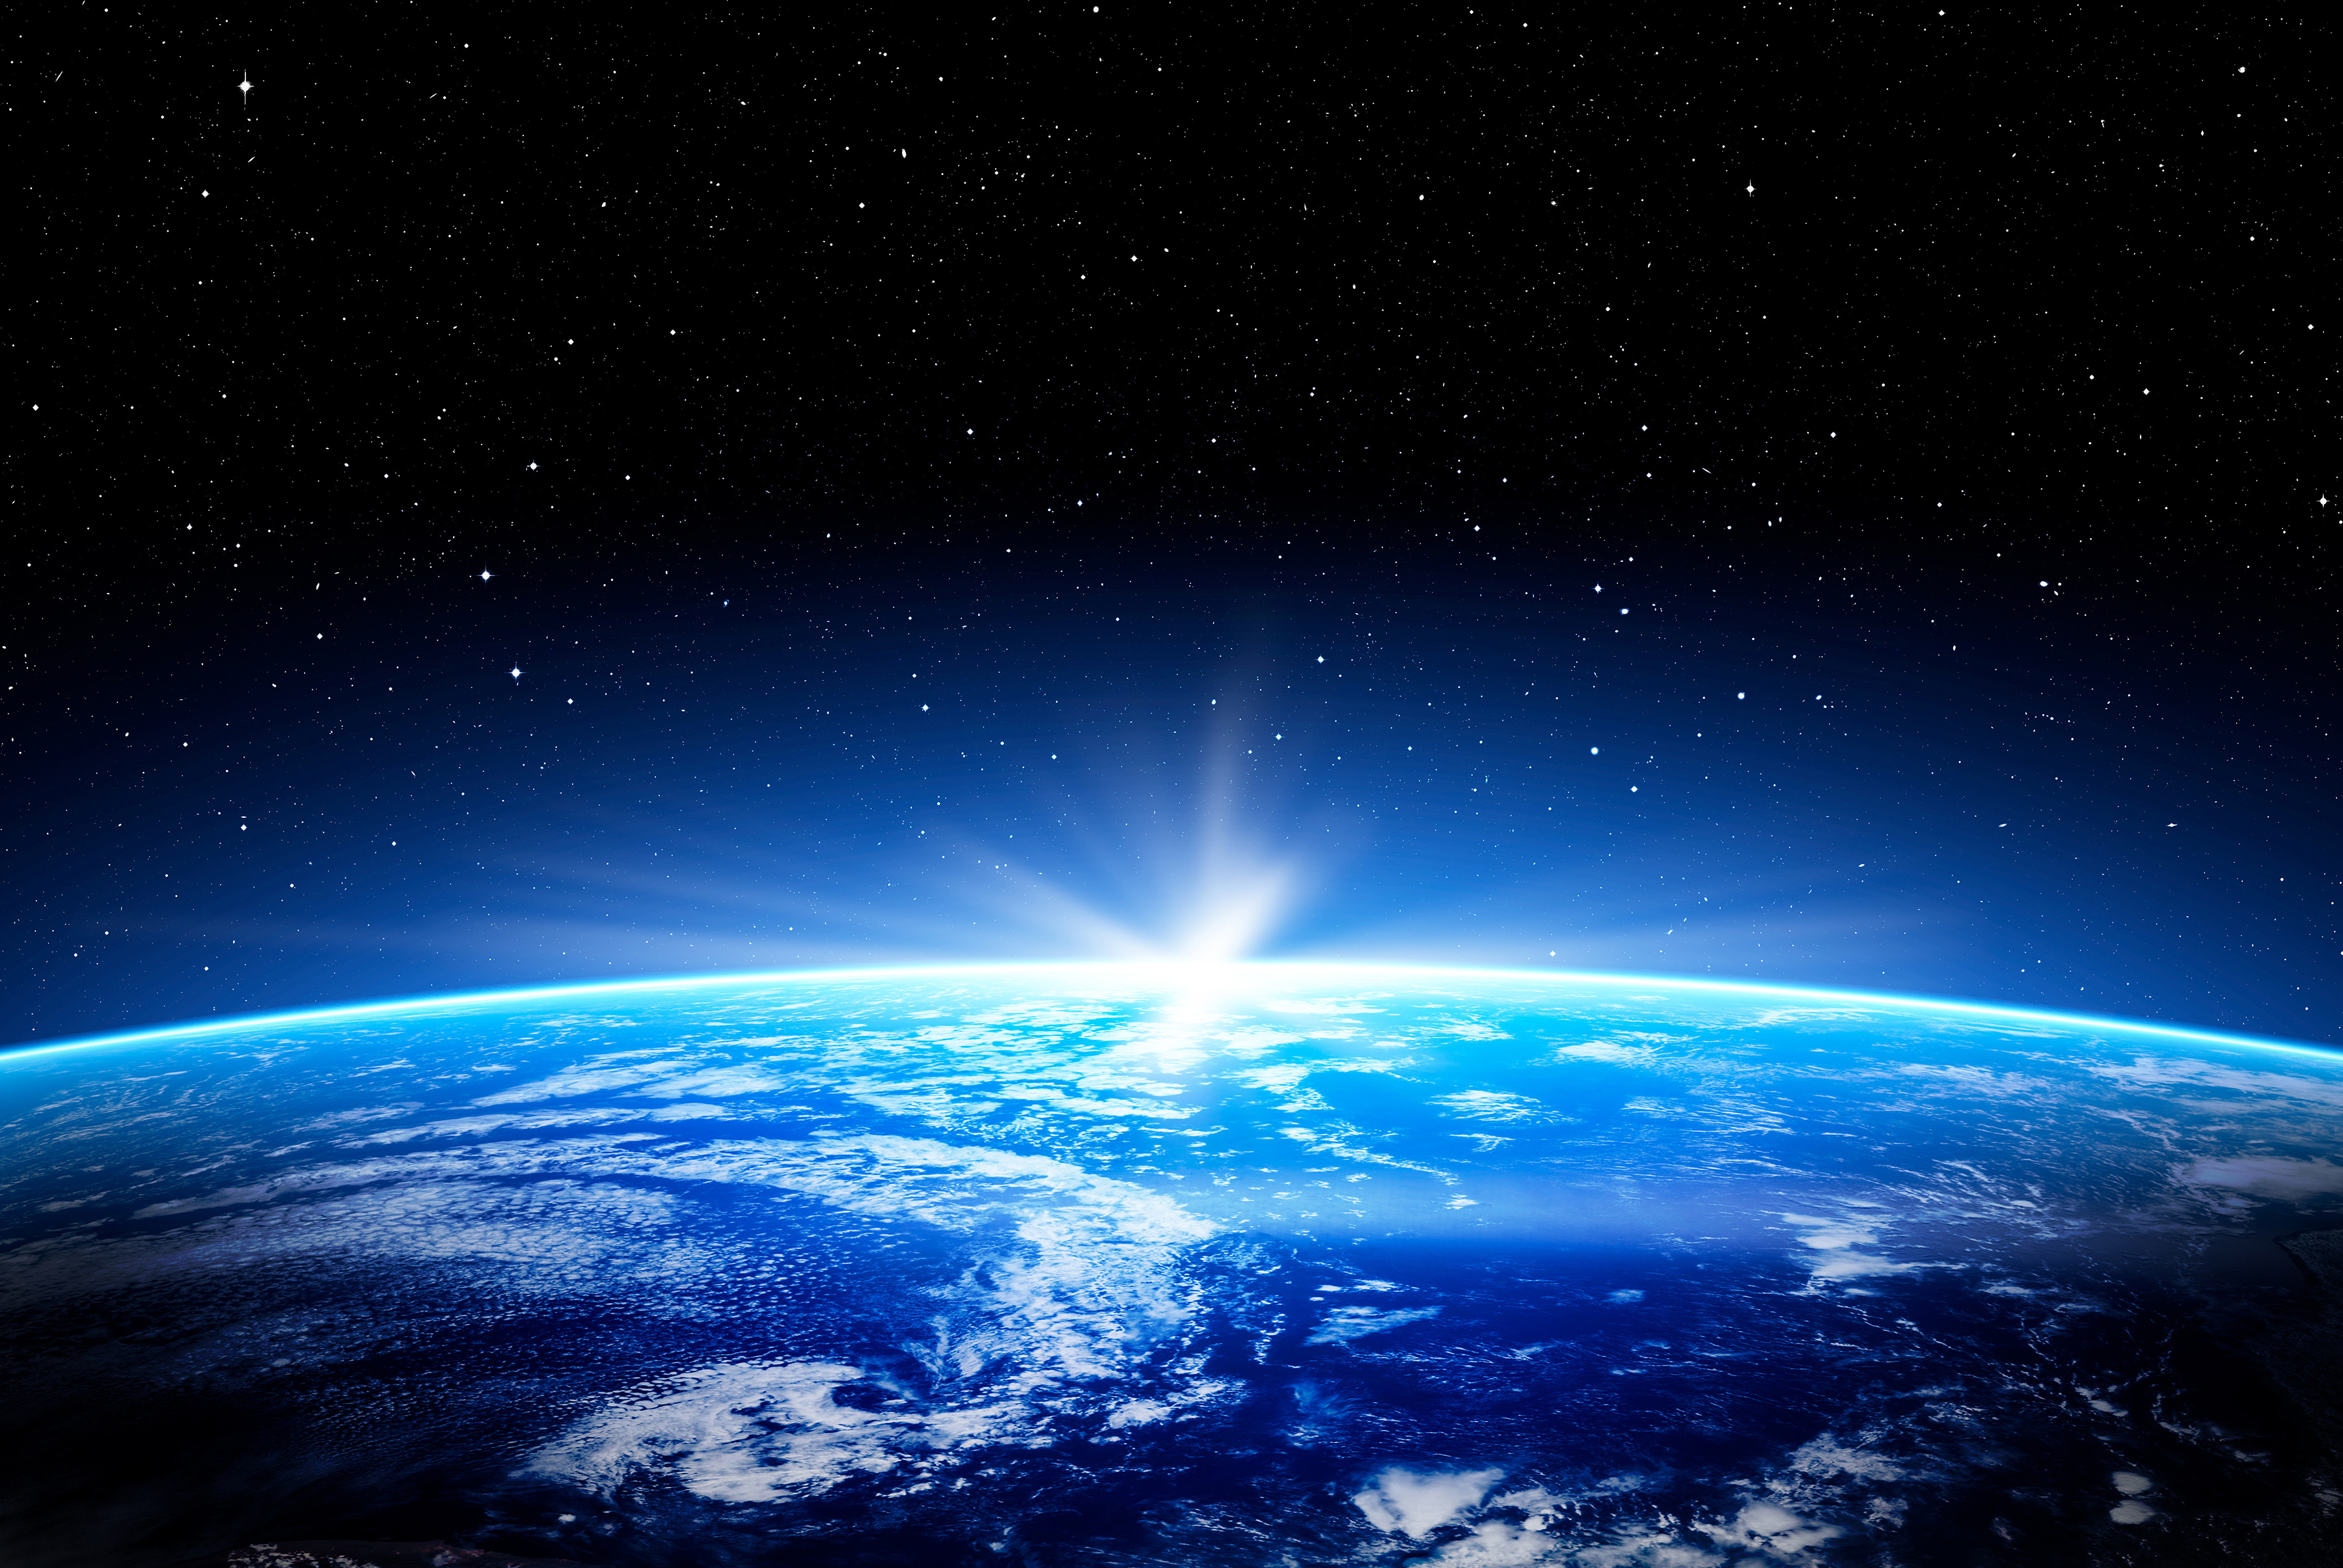 The blue planet 4968 in the vast universe 55233